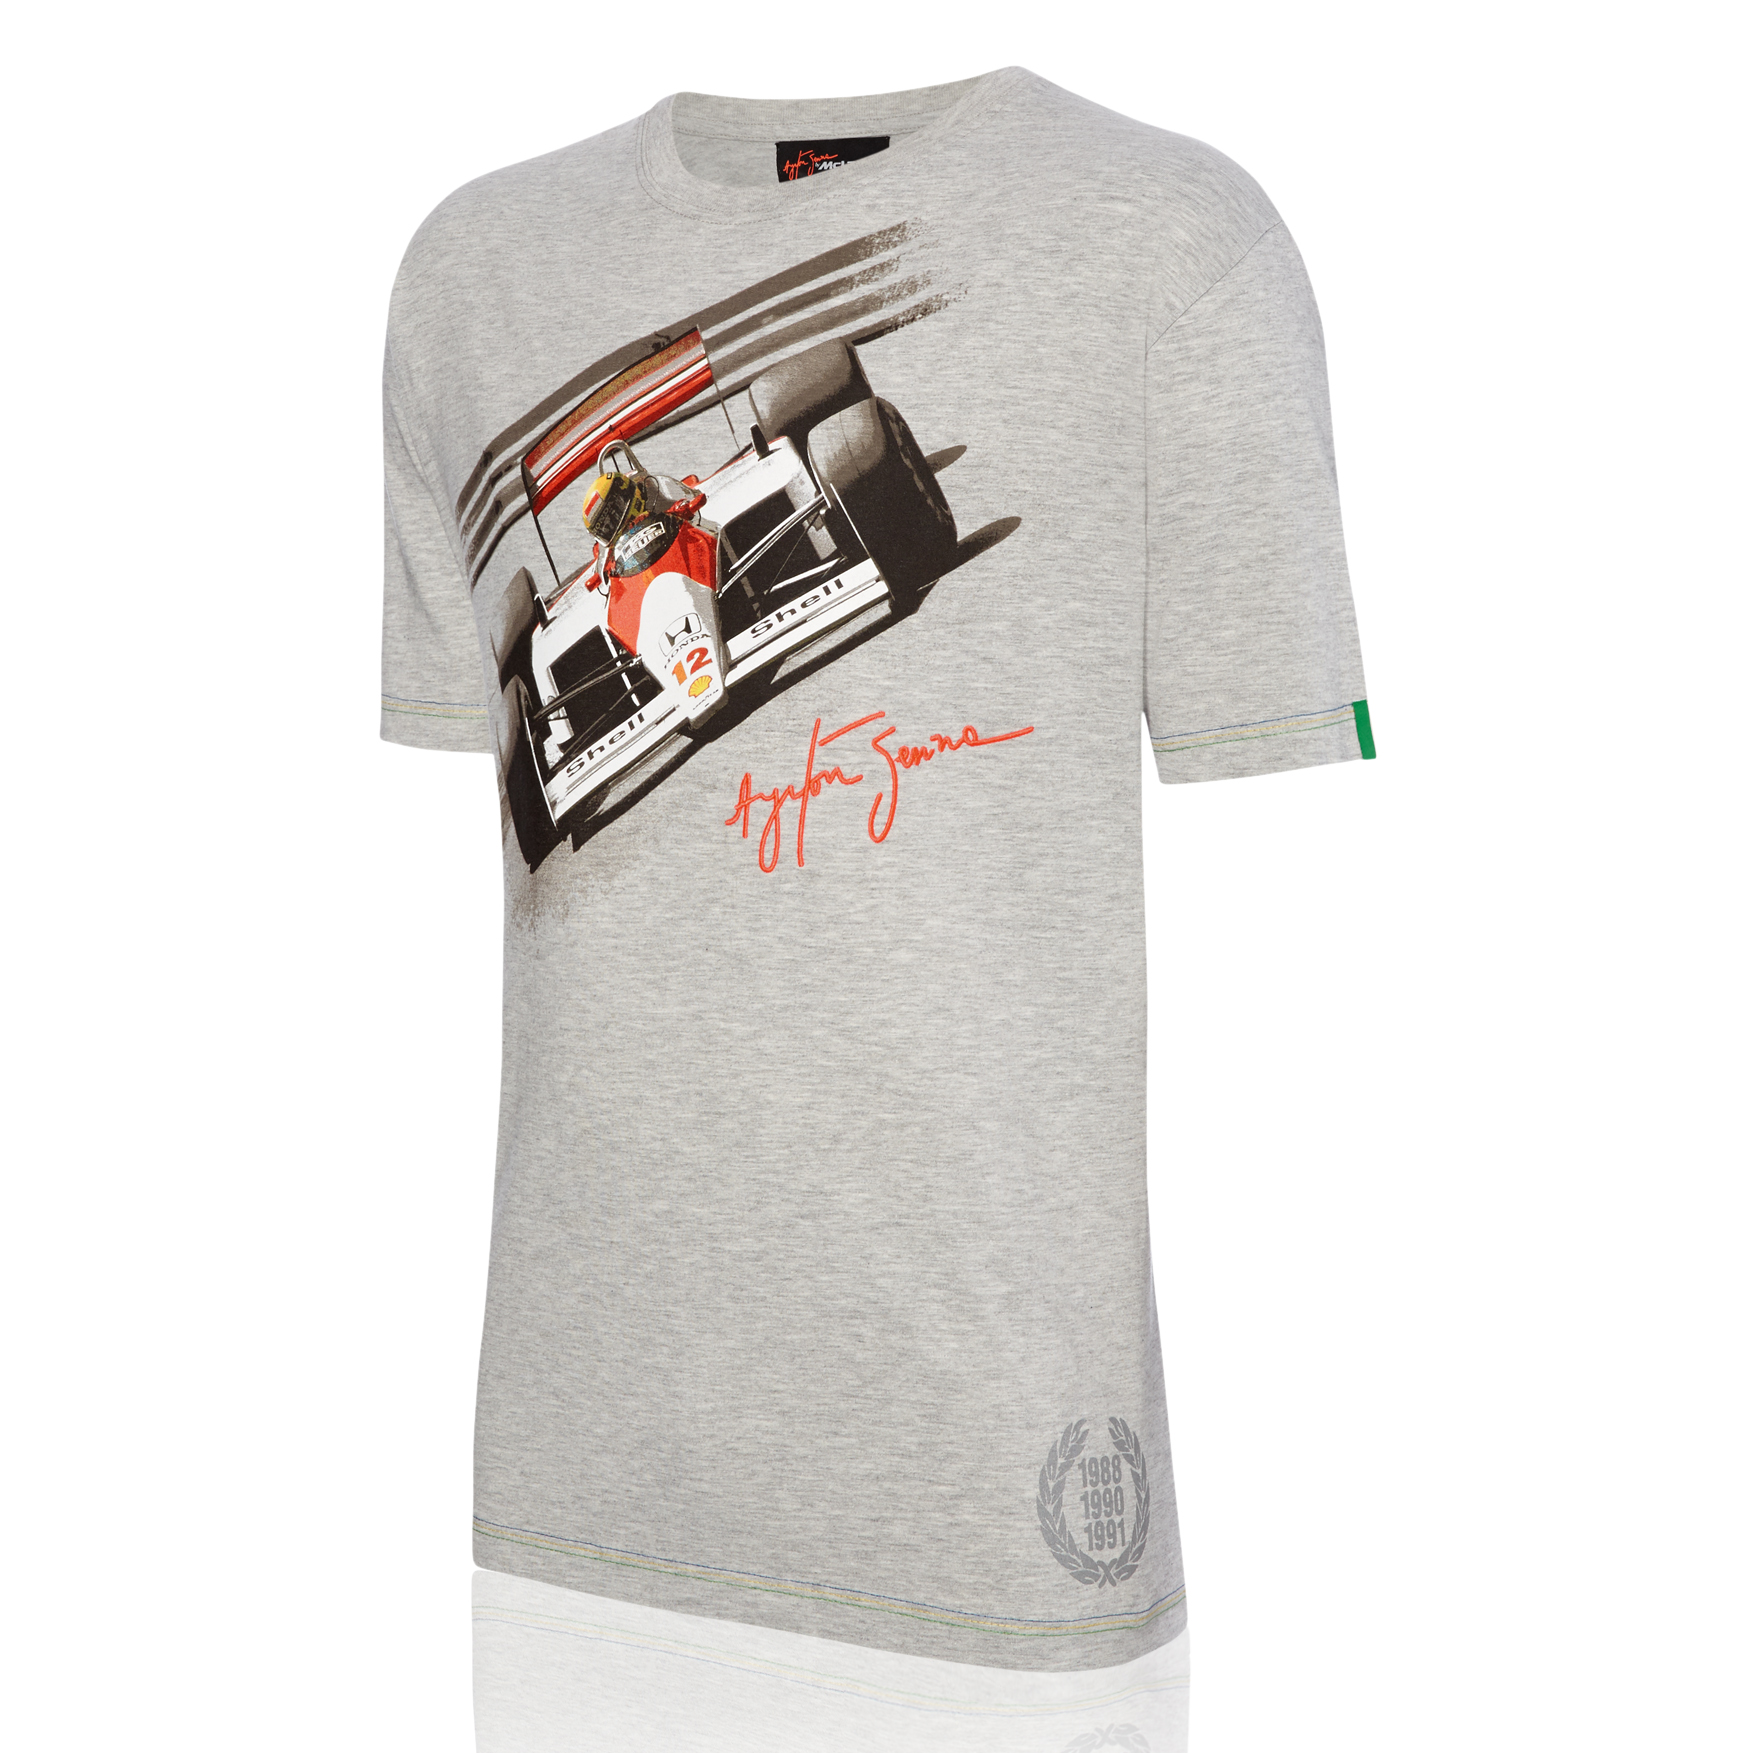 Team McLaren Senna T-Shirt